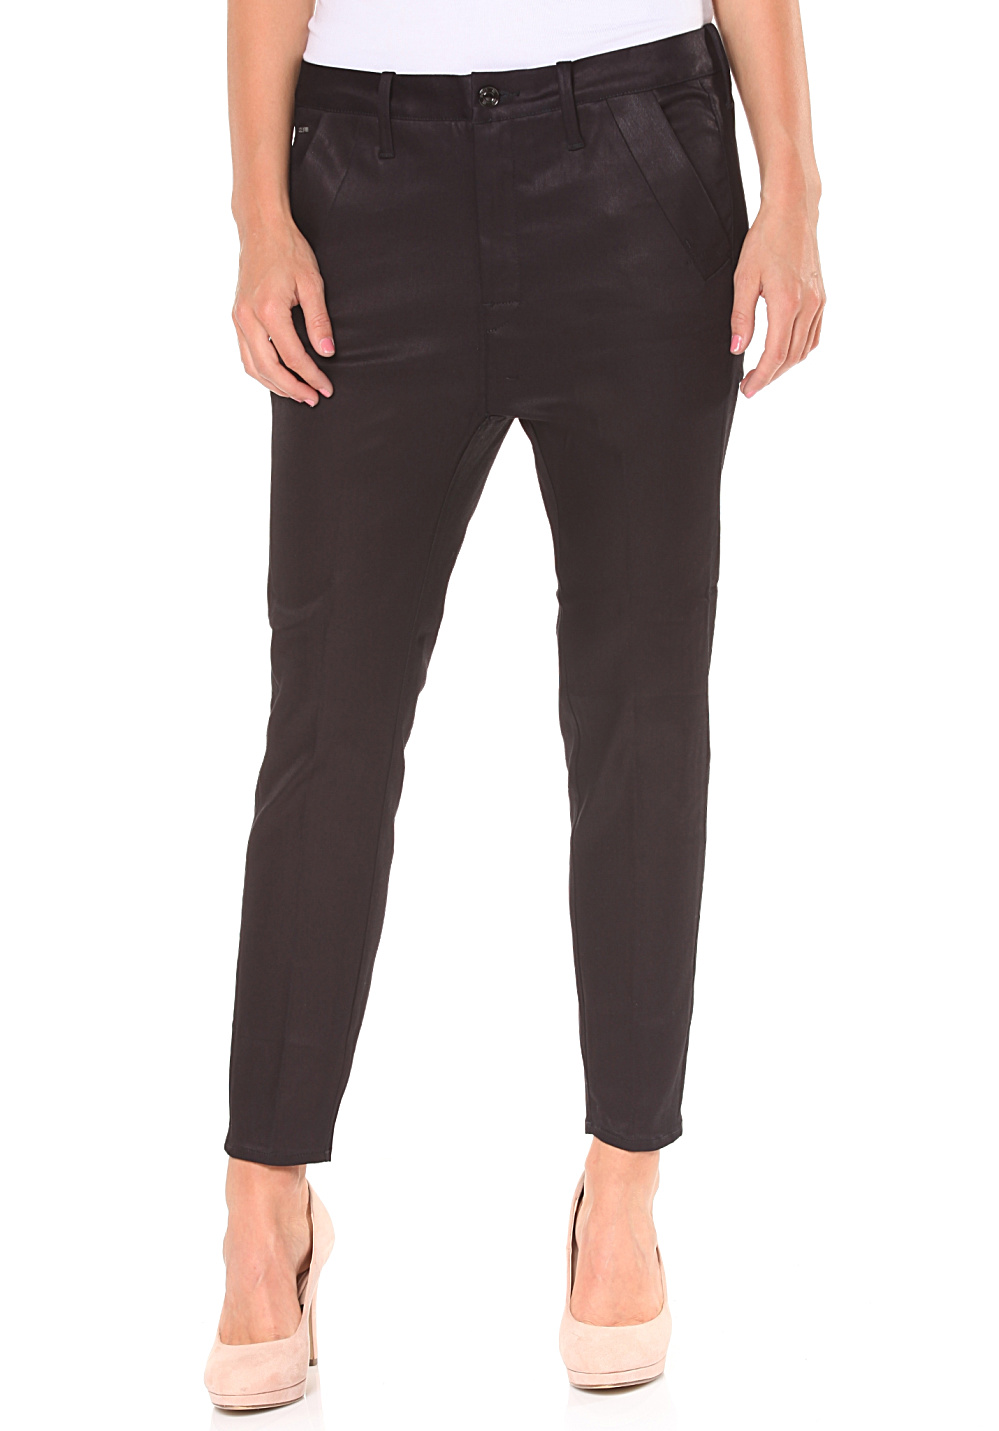 G-Star Brsn Low Bf Chn-Cilex Marine Superstretch - Jeans für Damen - Schwarz -